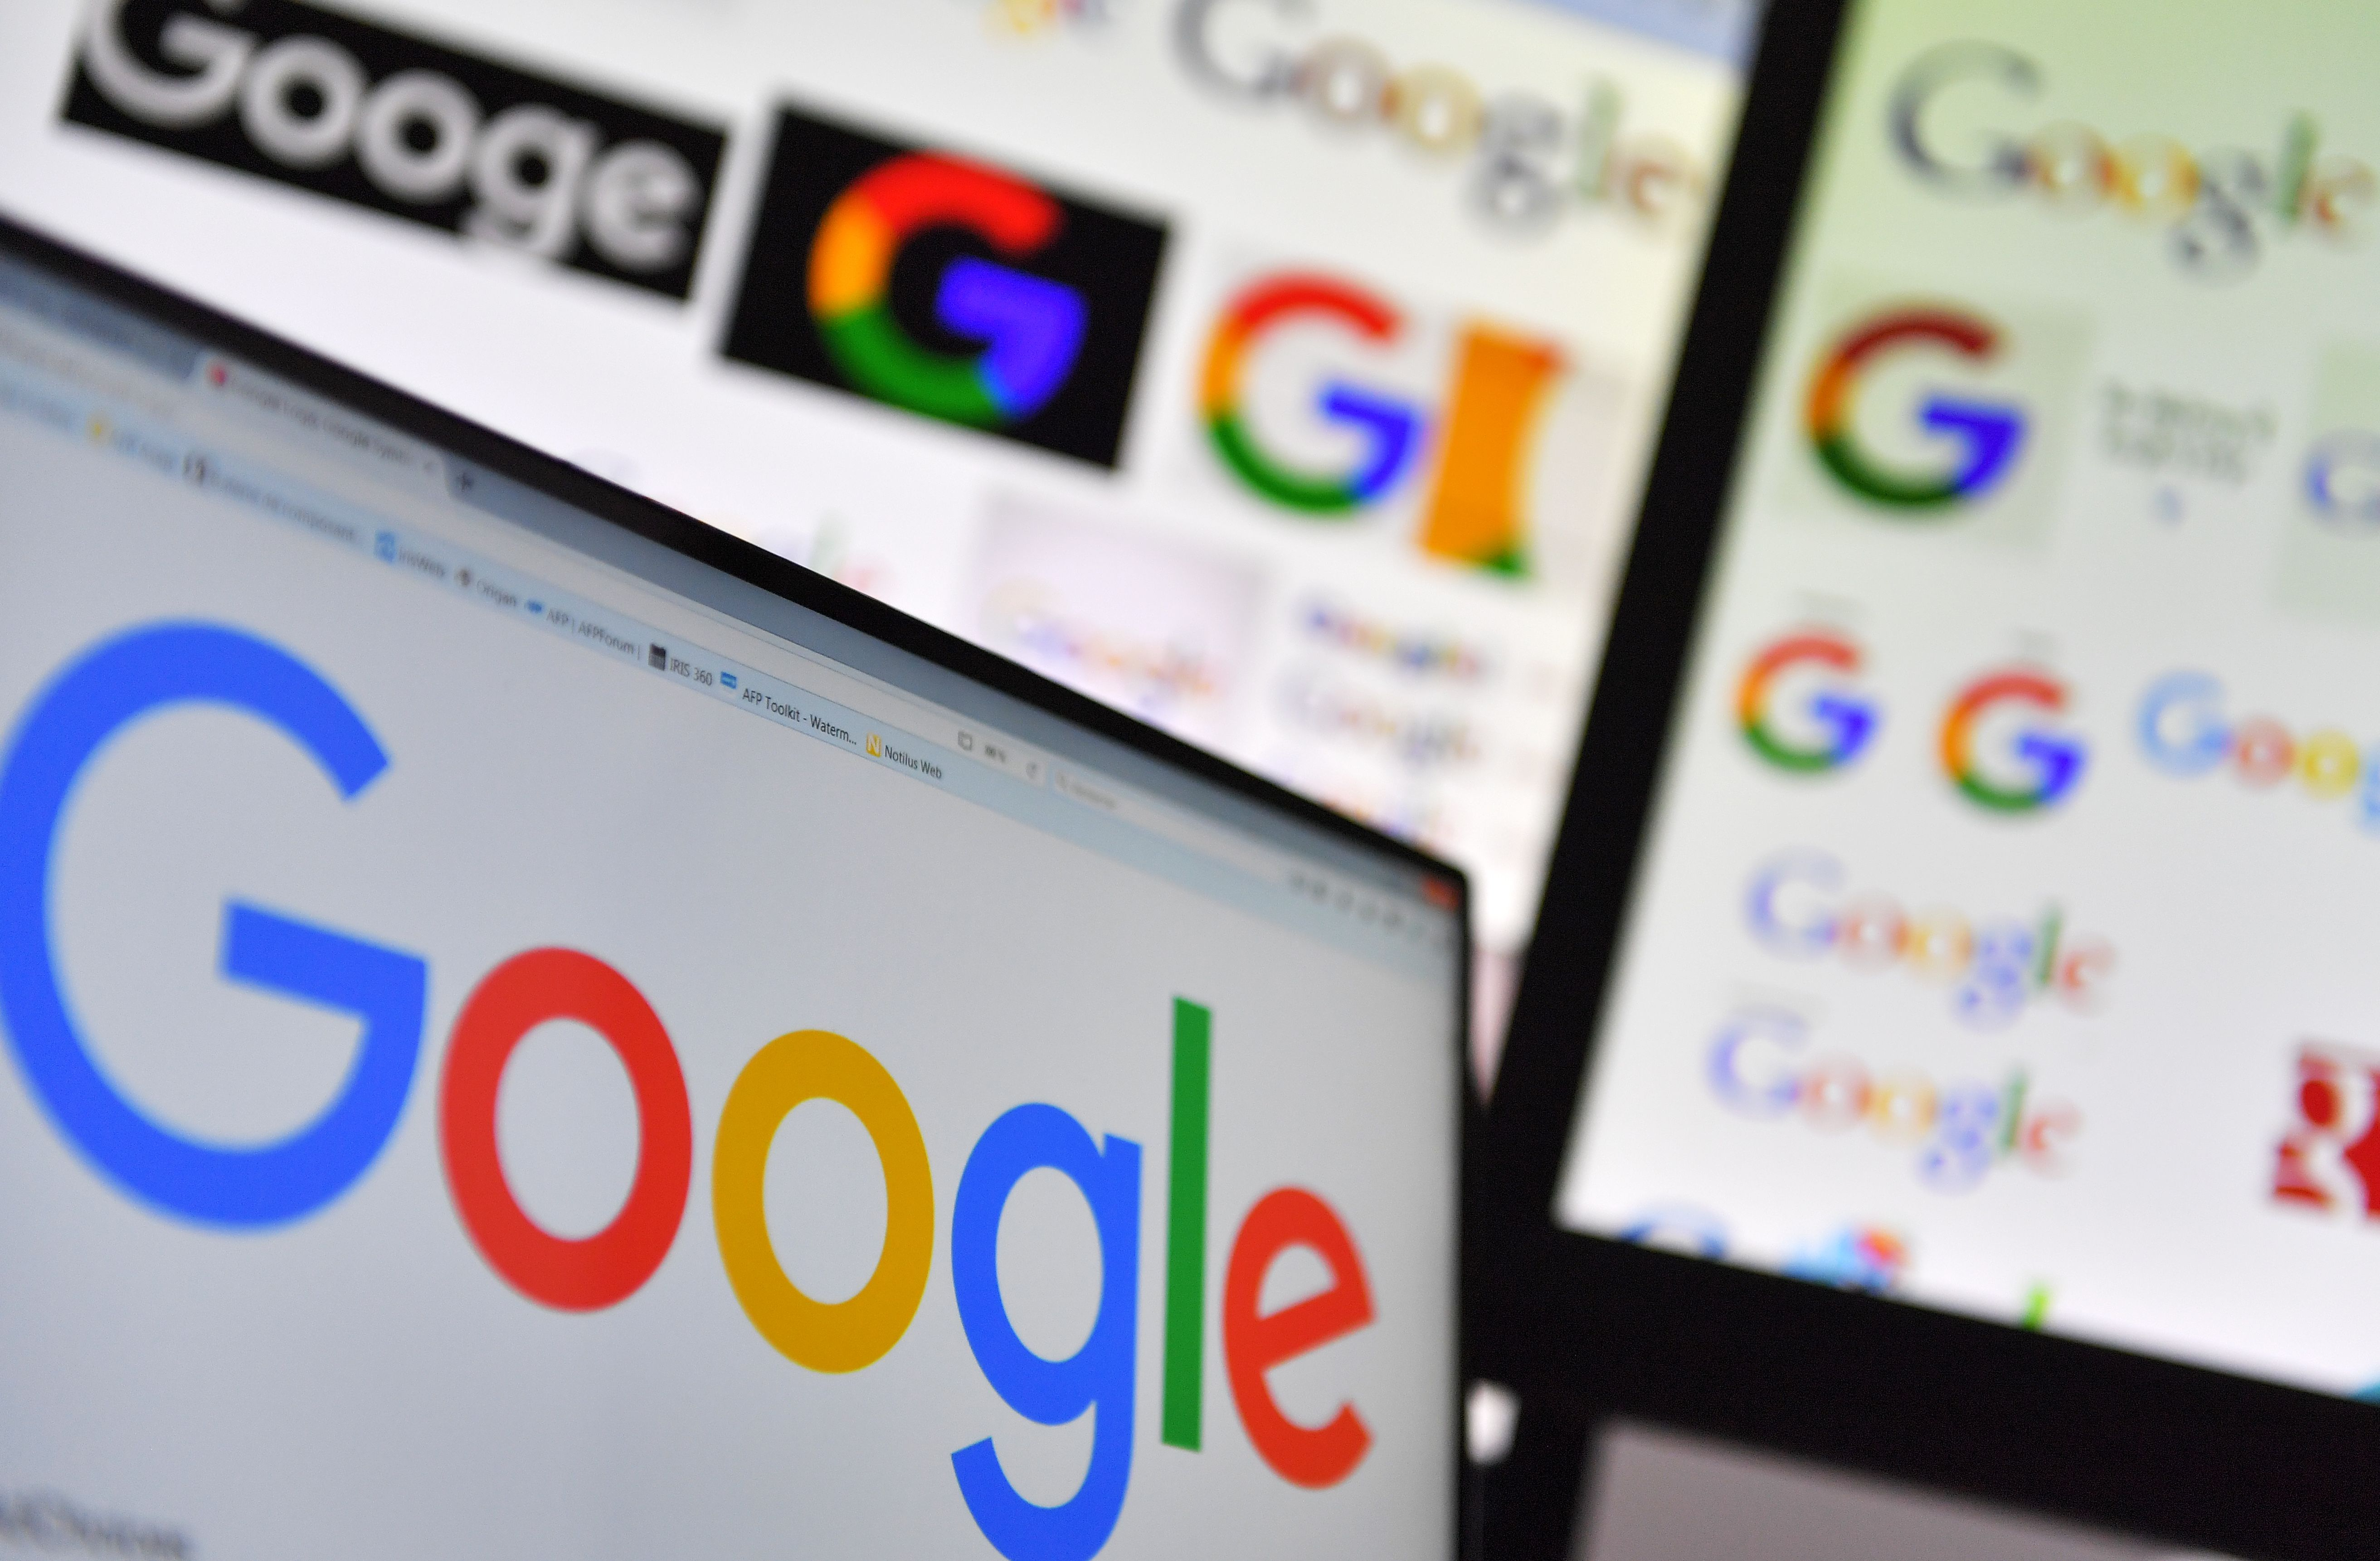 A picture taken on Nov. 20, 2017 shows logos of US multinational technology company Google displayed on computer screens.